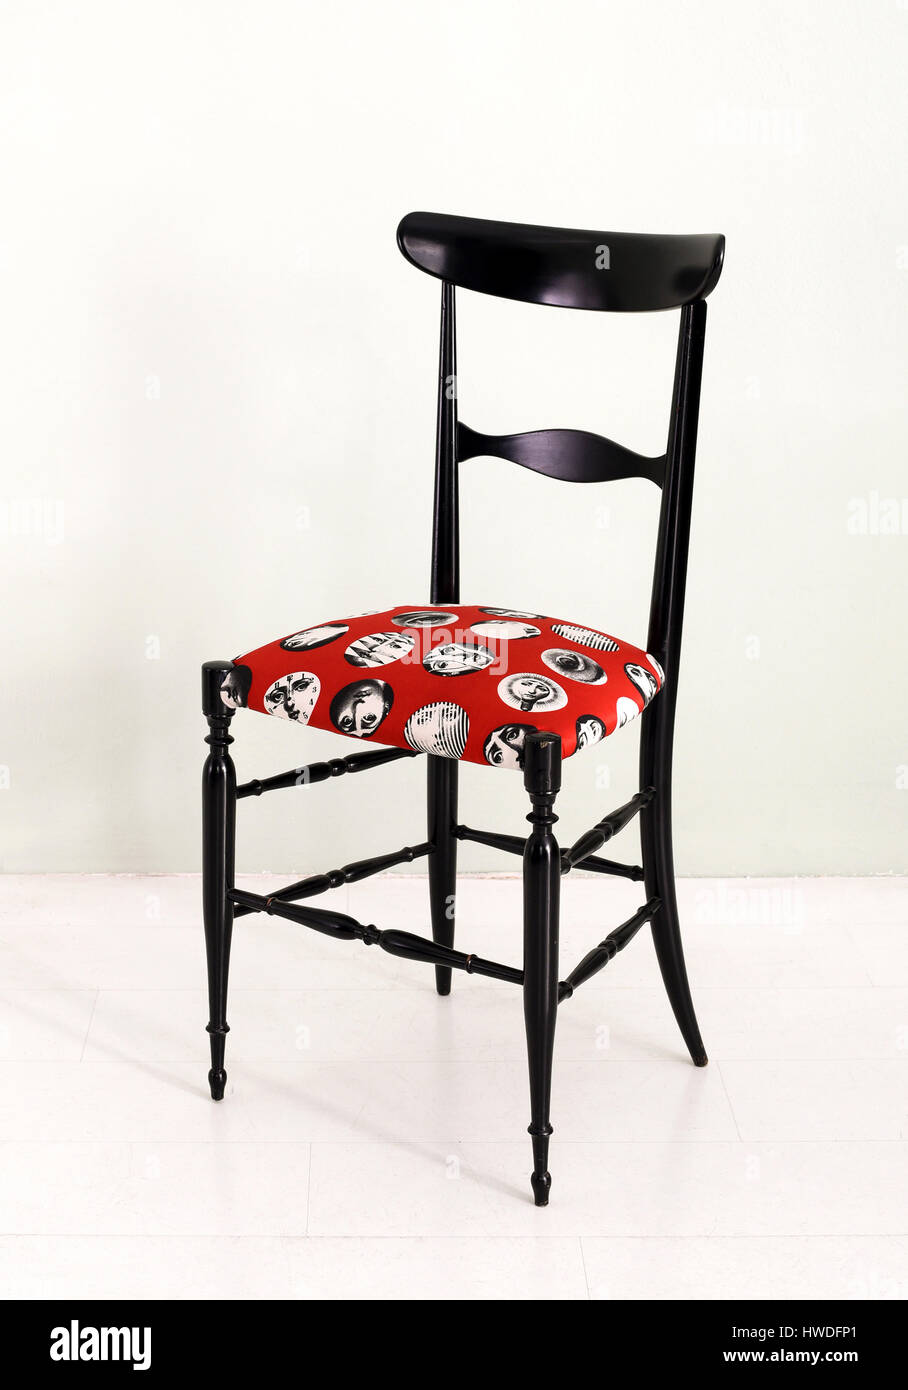 Elegant black Italian designer Fornasetti chair with a bold patterned red upholstered seat and stylish frame - Stock Image